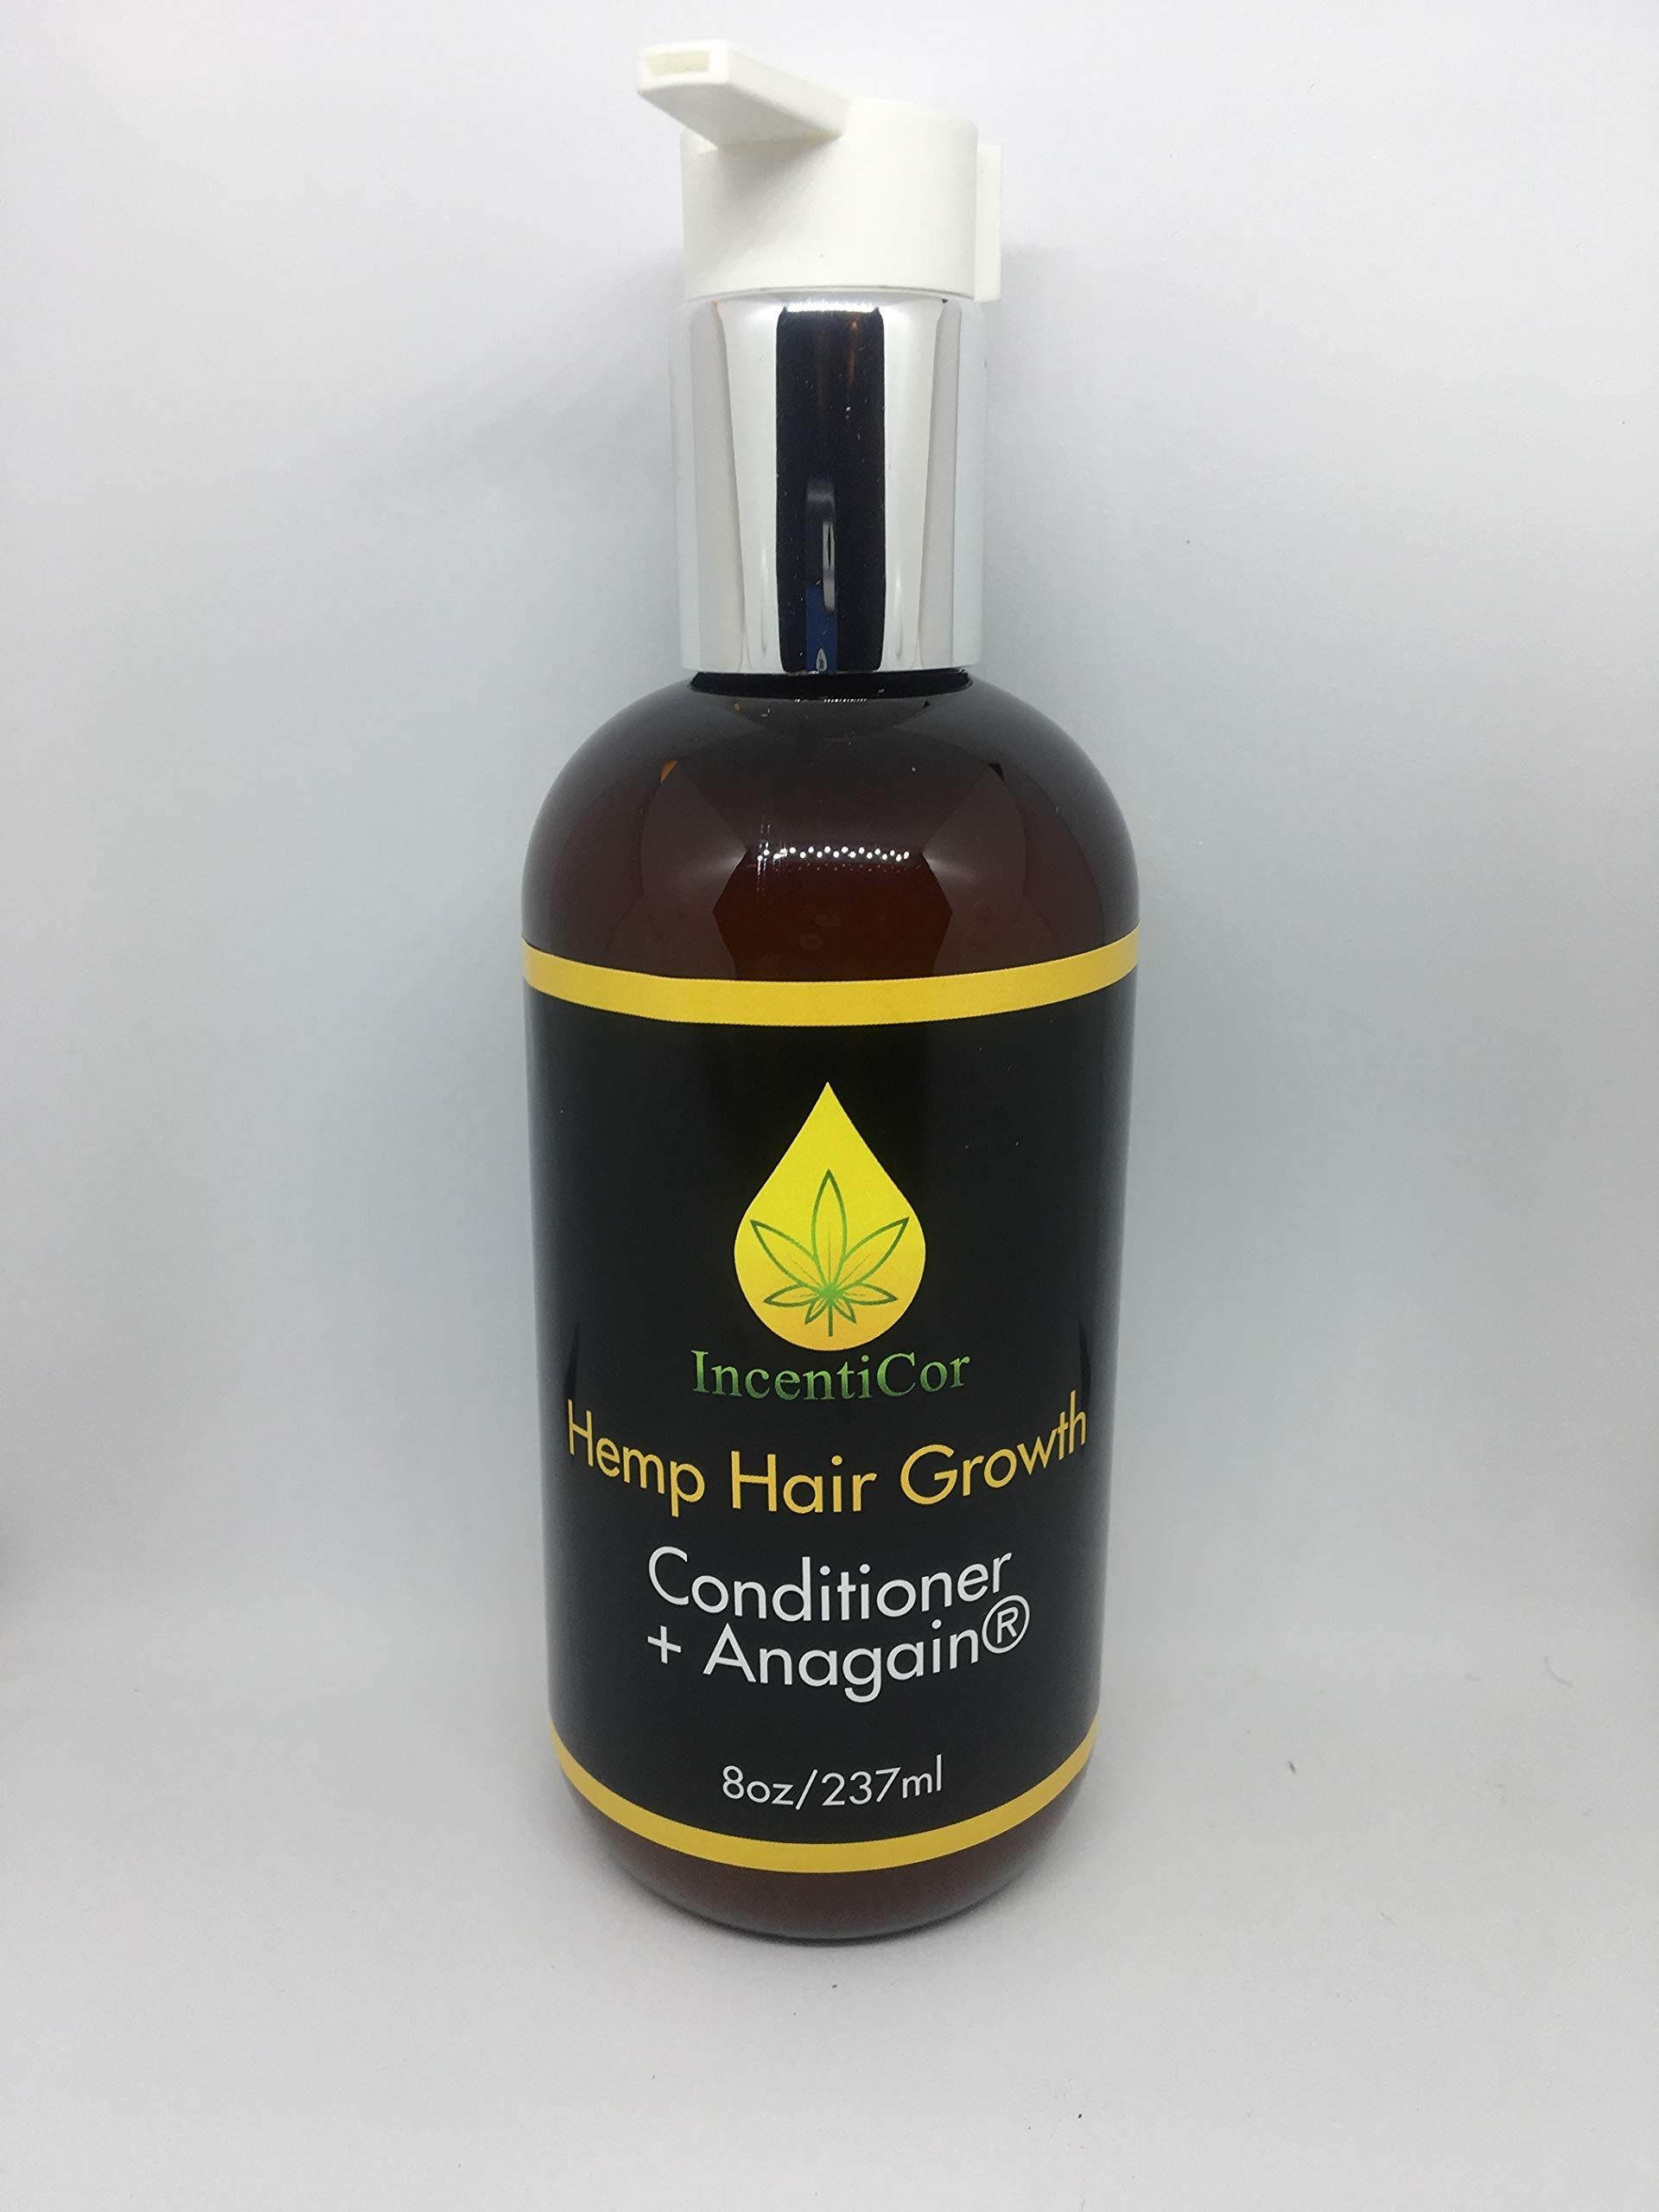 Incenticor-Hemp Oil Hair Regrowth Conditioner + Anagain 50mg   For Thicker Fuller Hair   Reactivates Hair Growth In Men and Women - 8oz